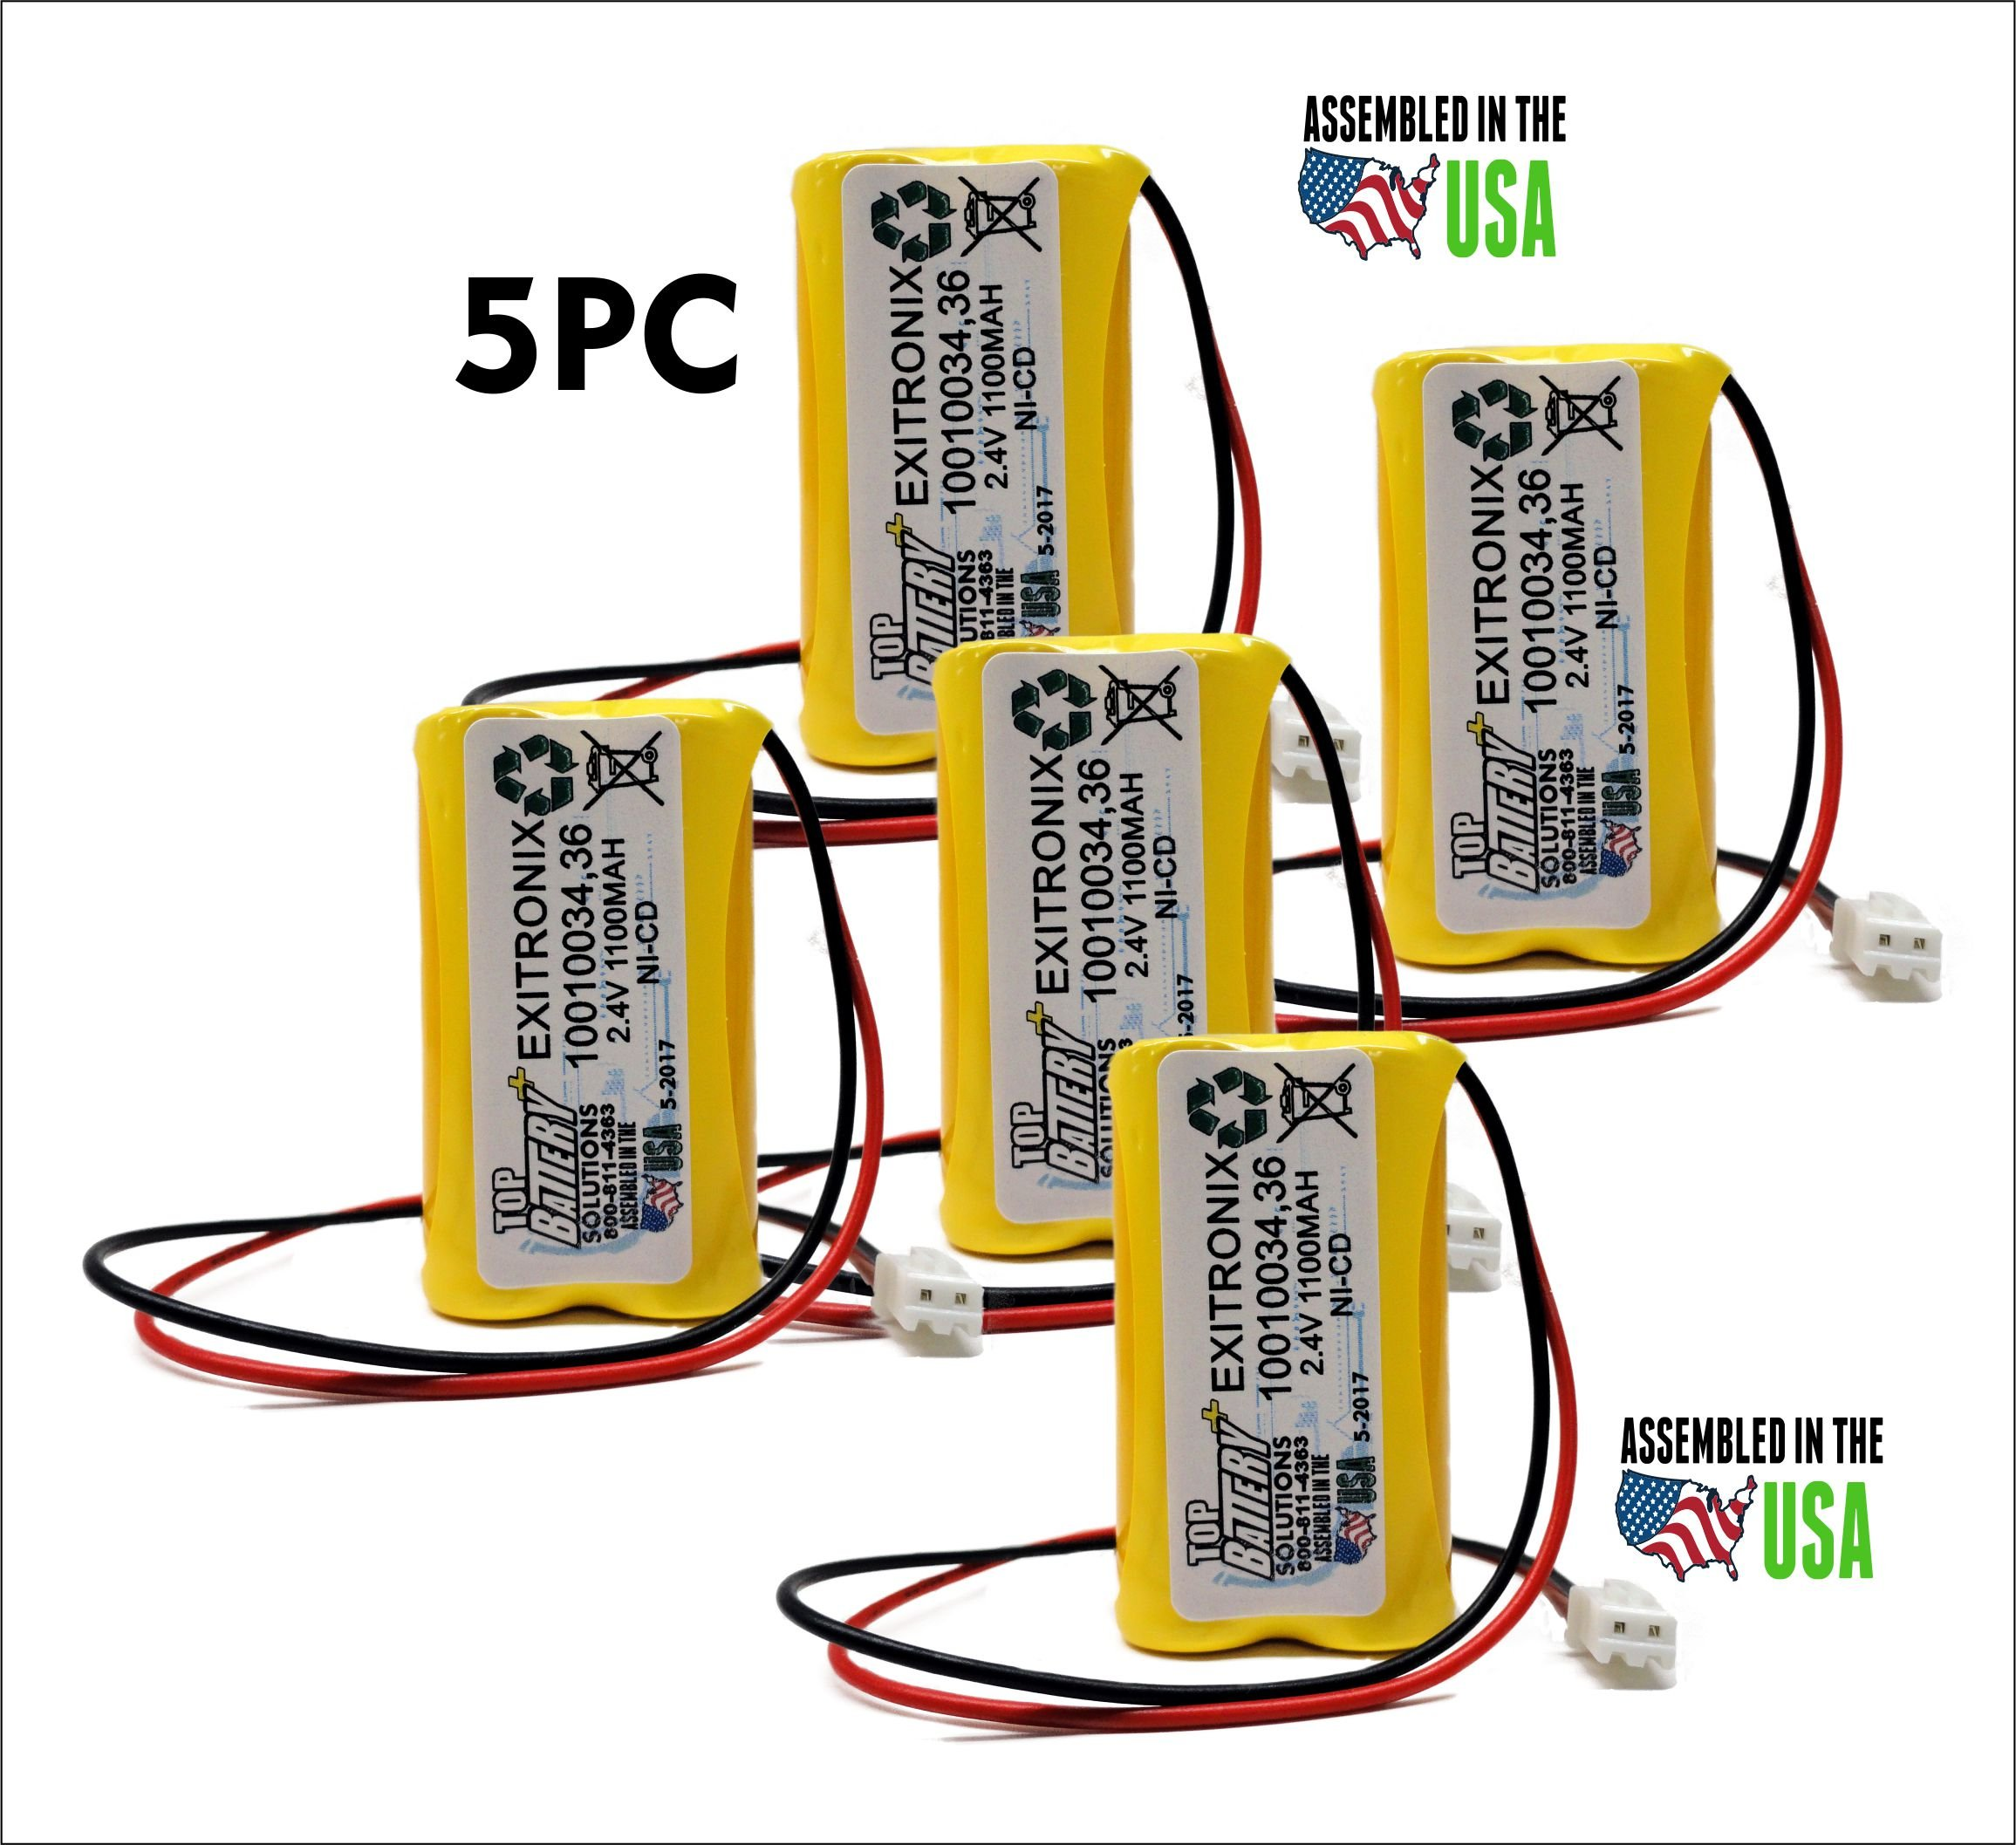 5PC Exitronix 10010034, Exitronix 10010036, Exell EBE-179,UNITECH 900AA MAH 2.4V REPLACEMENT BATTERY